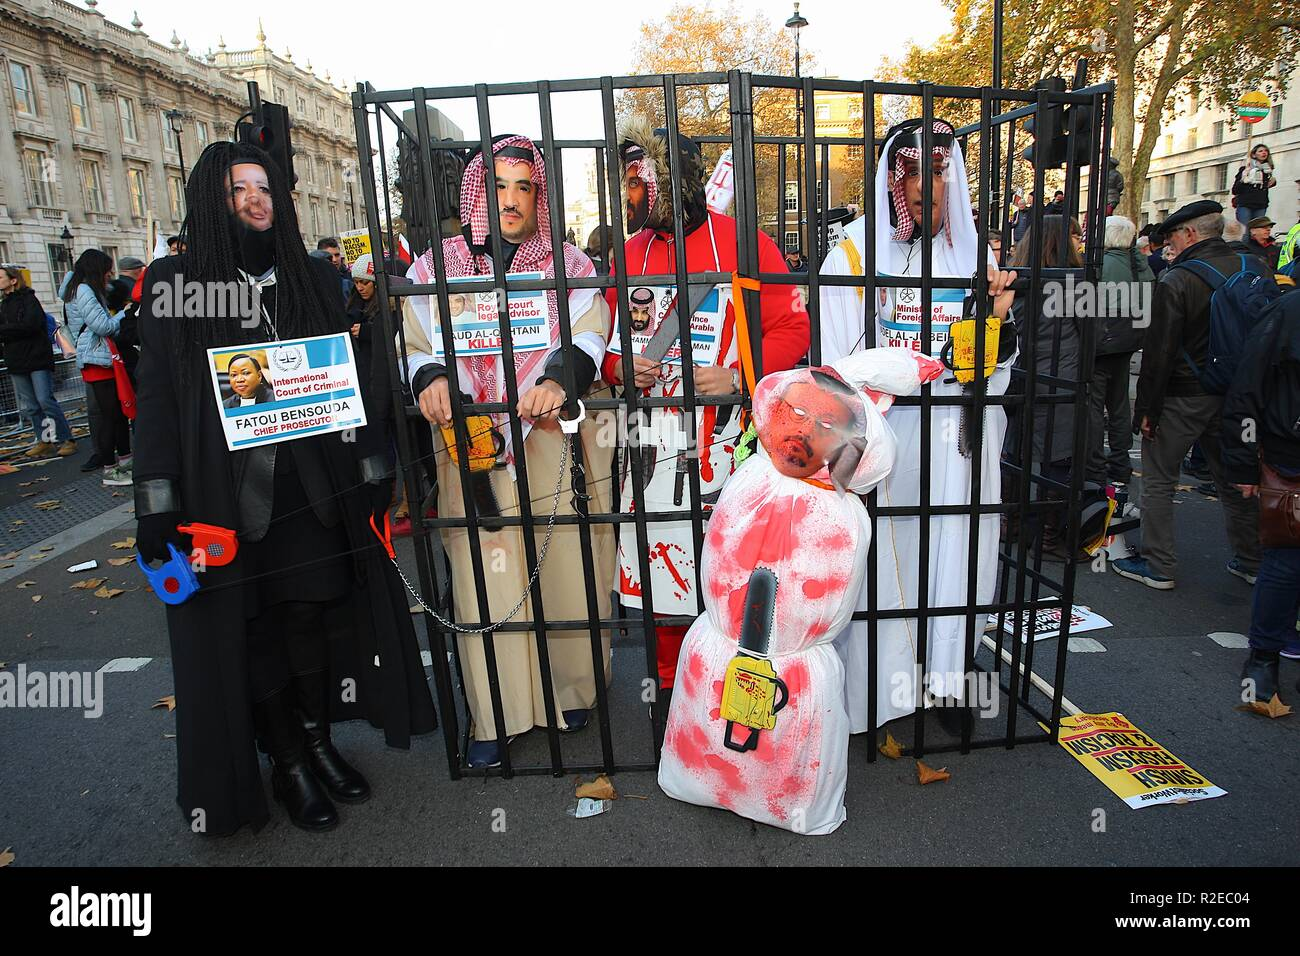 Protesters in London dress up with a cage showing those responsible for the killing of Saudi Washington post journalist Jamal Khashoggi. - Stock Image